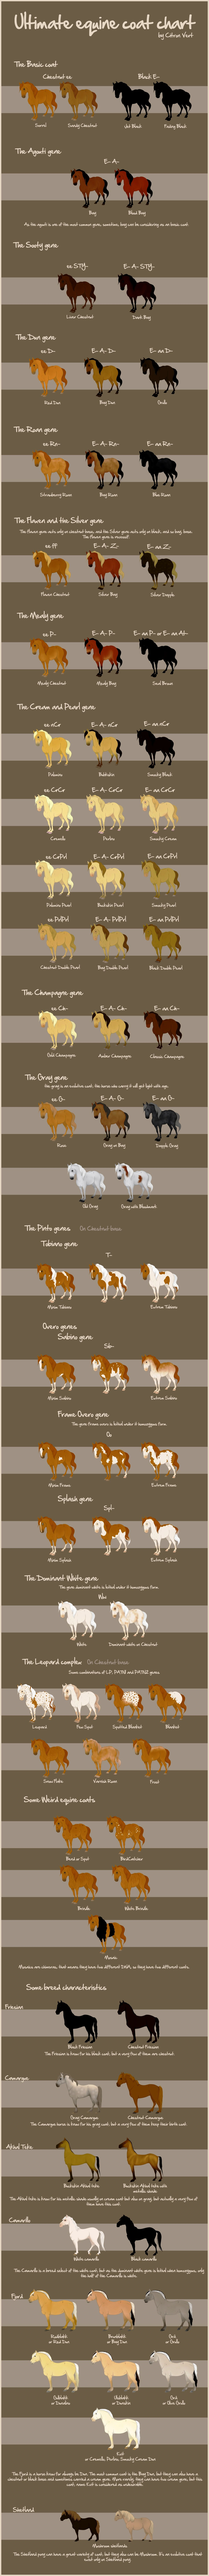 Equine Coat Color Chart (including genetics) - color characteristics by breed.